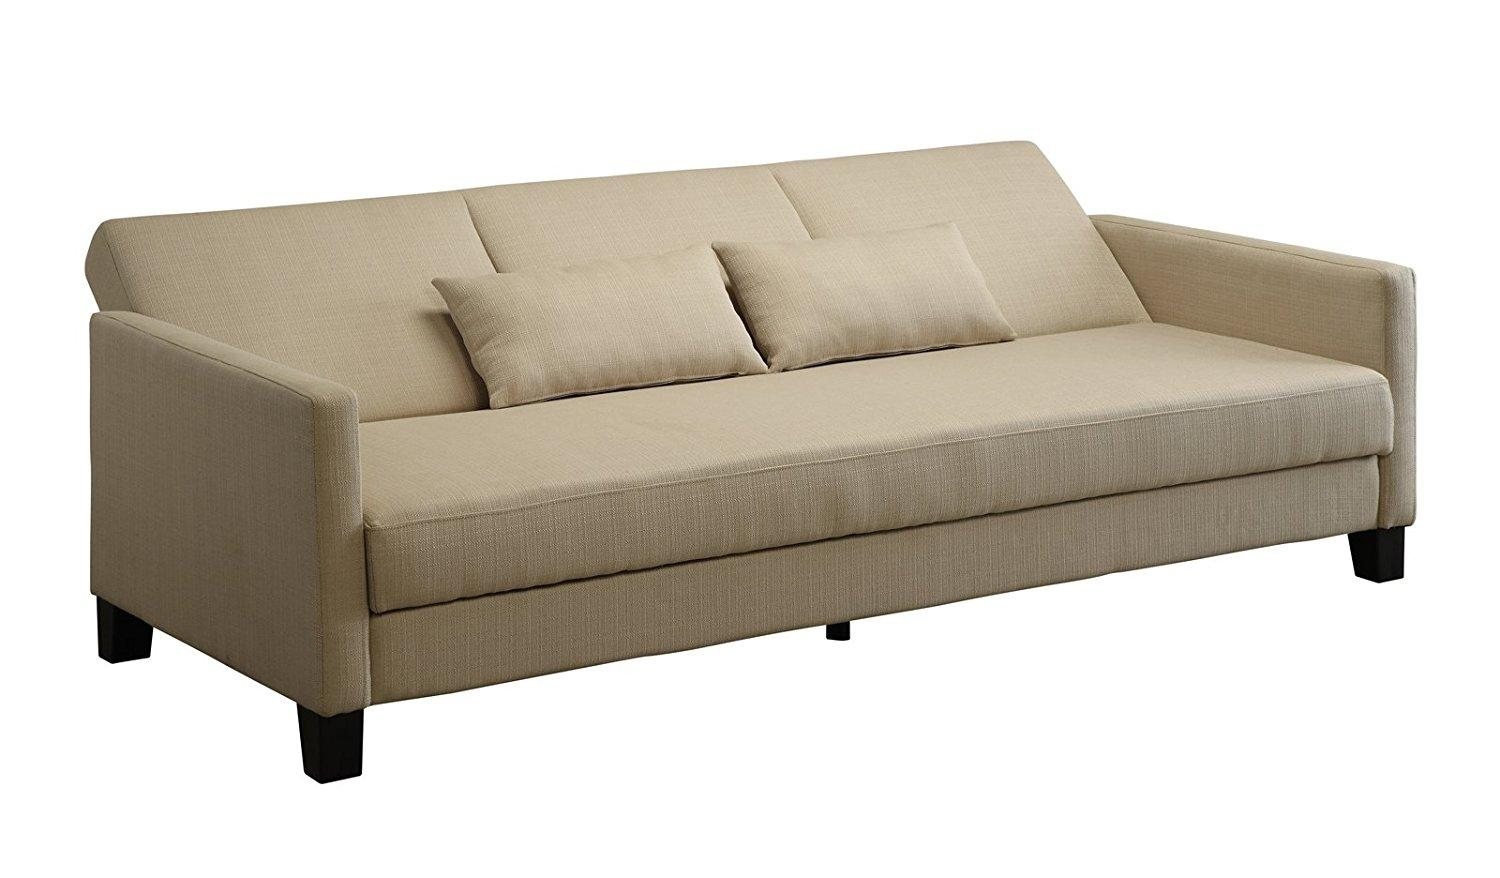 Twin Sleeper Sofa Ikea (Image 20 of 20)